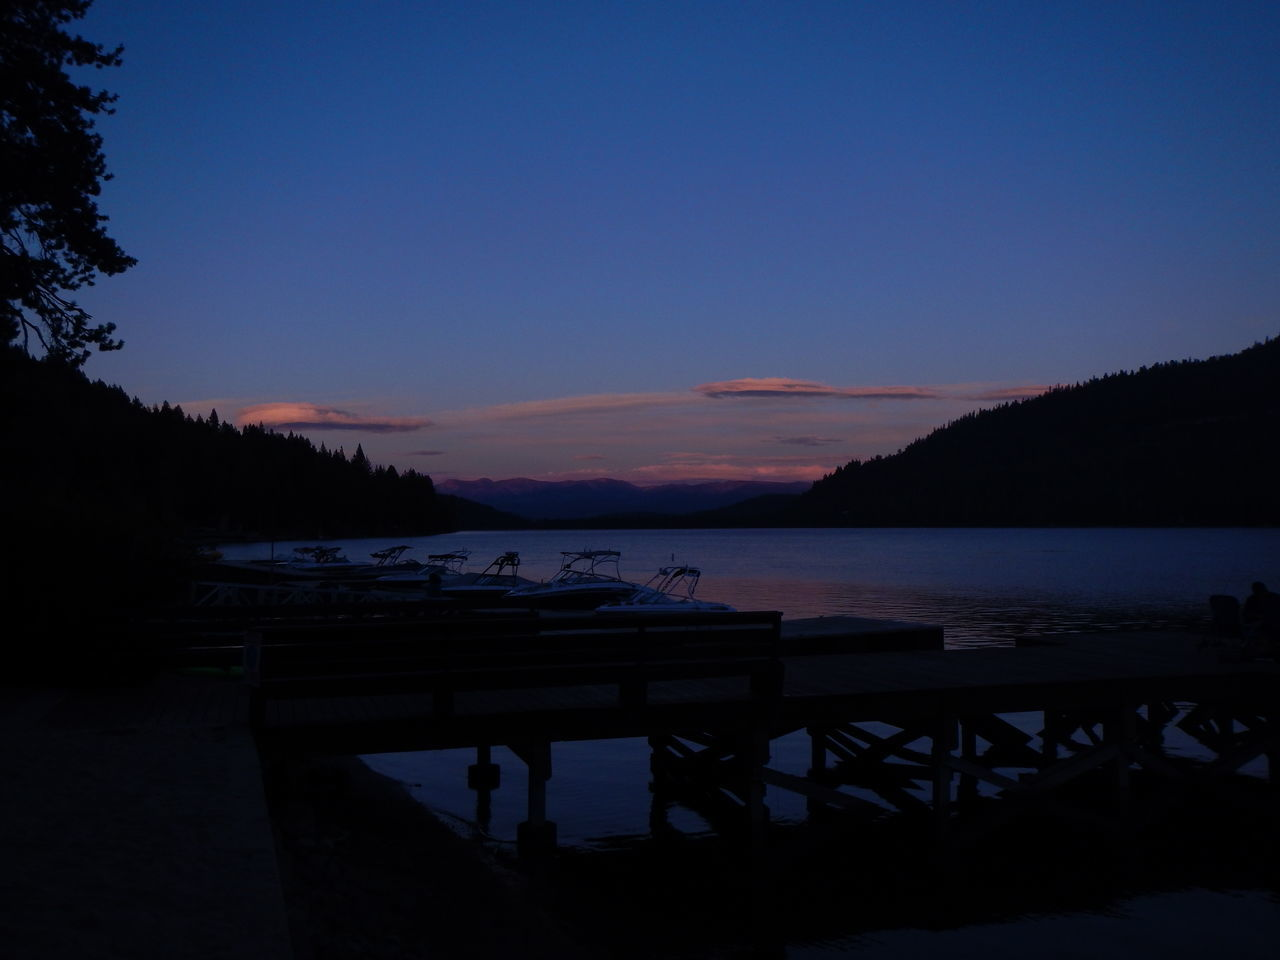 Donner Lake at dusk. View from Donner Lake Village (West Shore). Beauty In Nature Bench Blue Calm Cloud Dark Empty Idyllic Jetty Lake Lakeshore Majestic Mountain Nature Outline Pier Remote Scenics Silhouette Sky Solitude Standing Water Tranquil Scene Tranquility Water